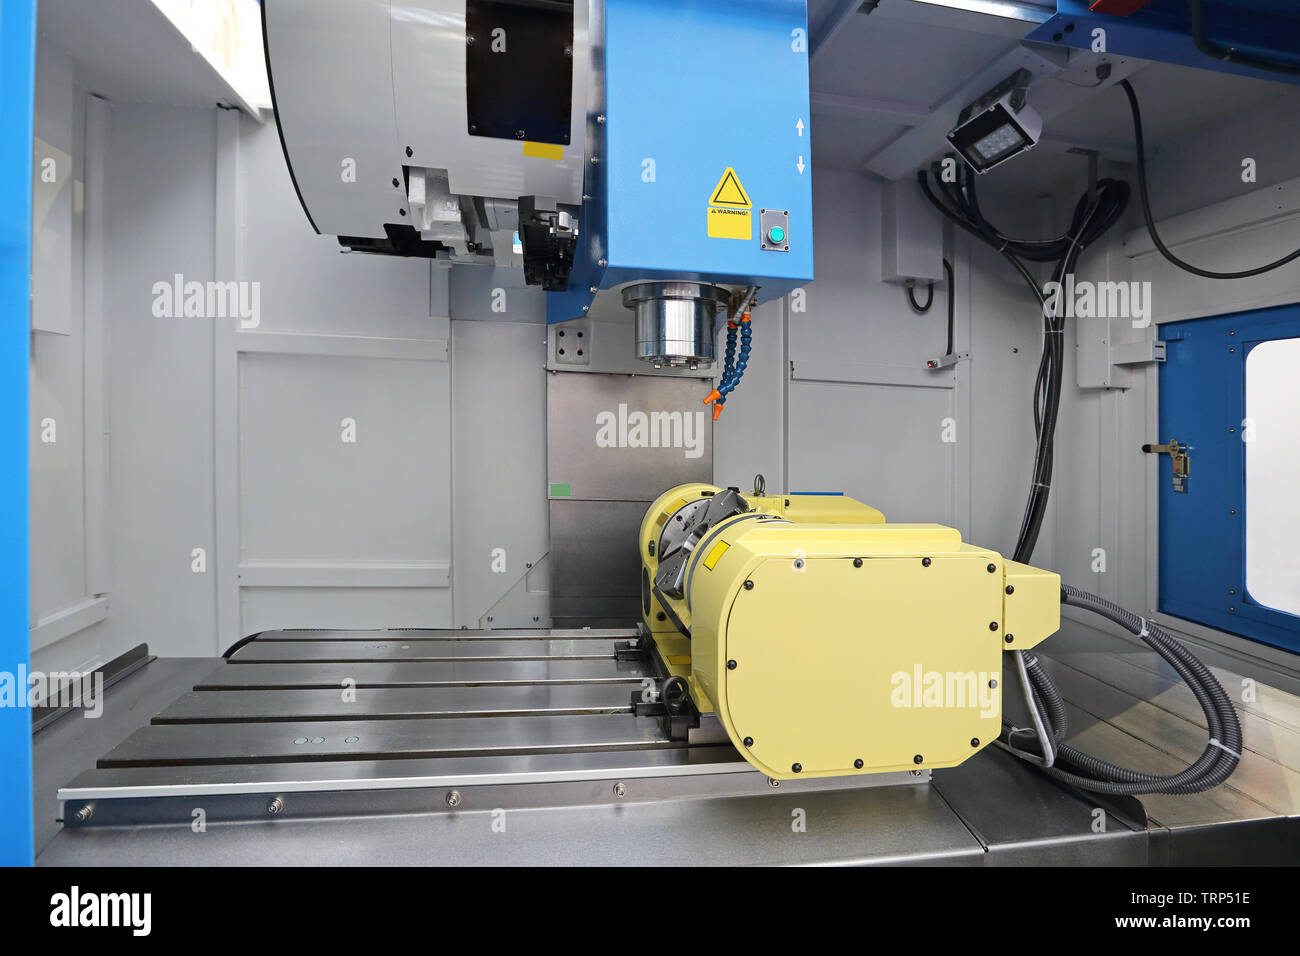 Computer Numerical Control Milling Machine Stock Photos & Computer